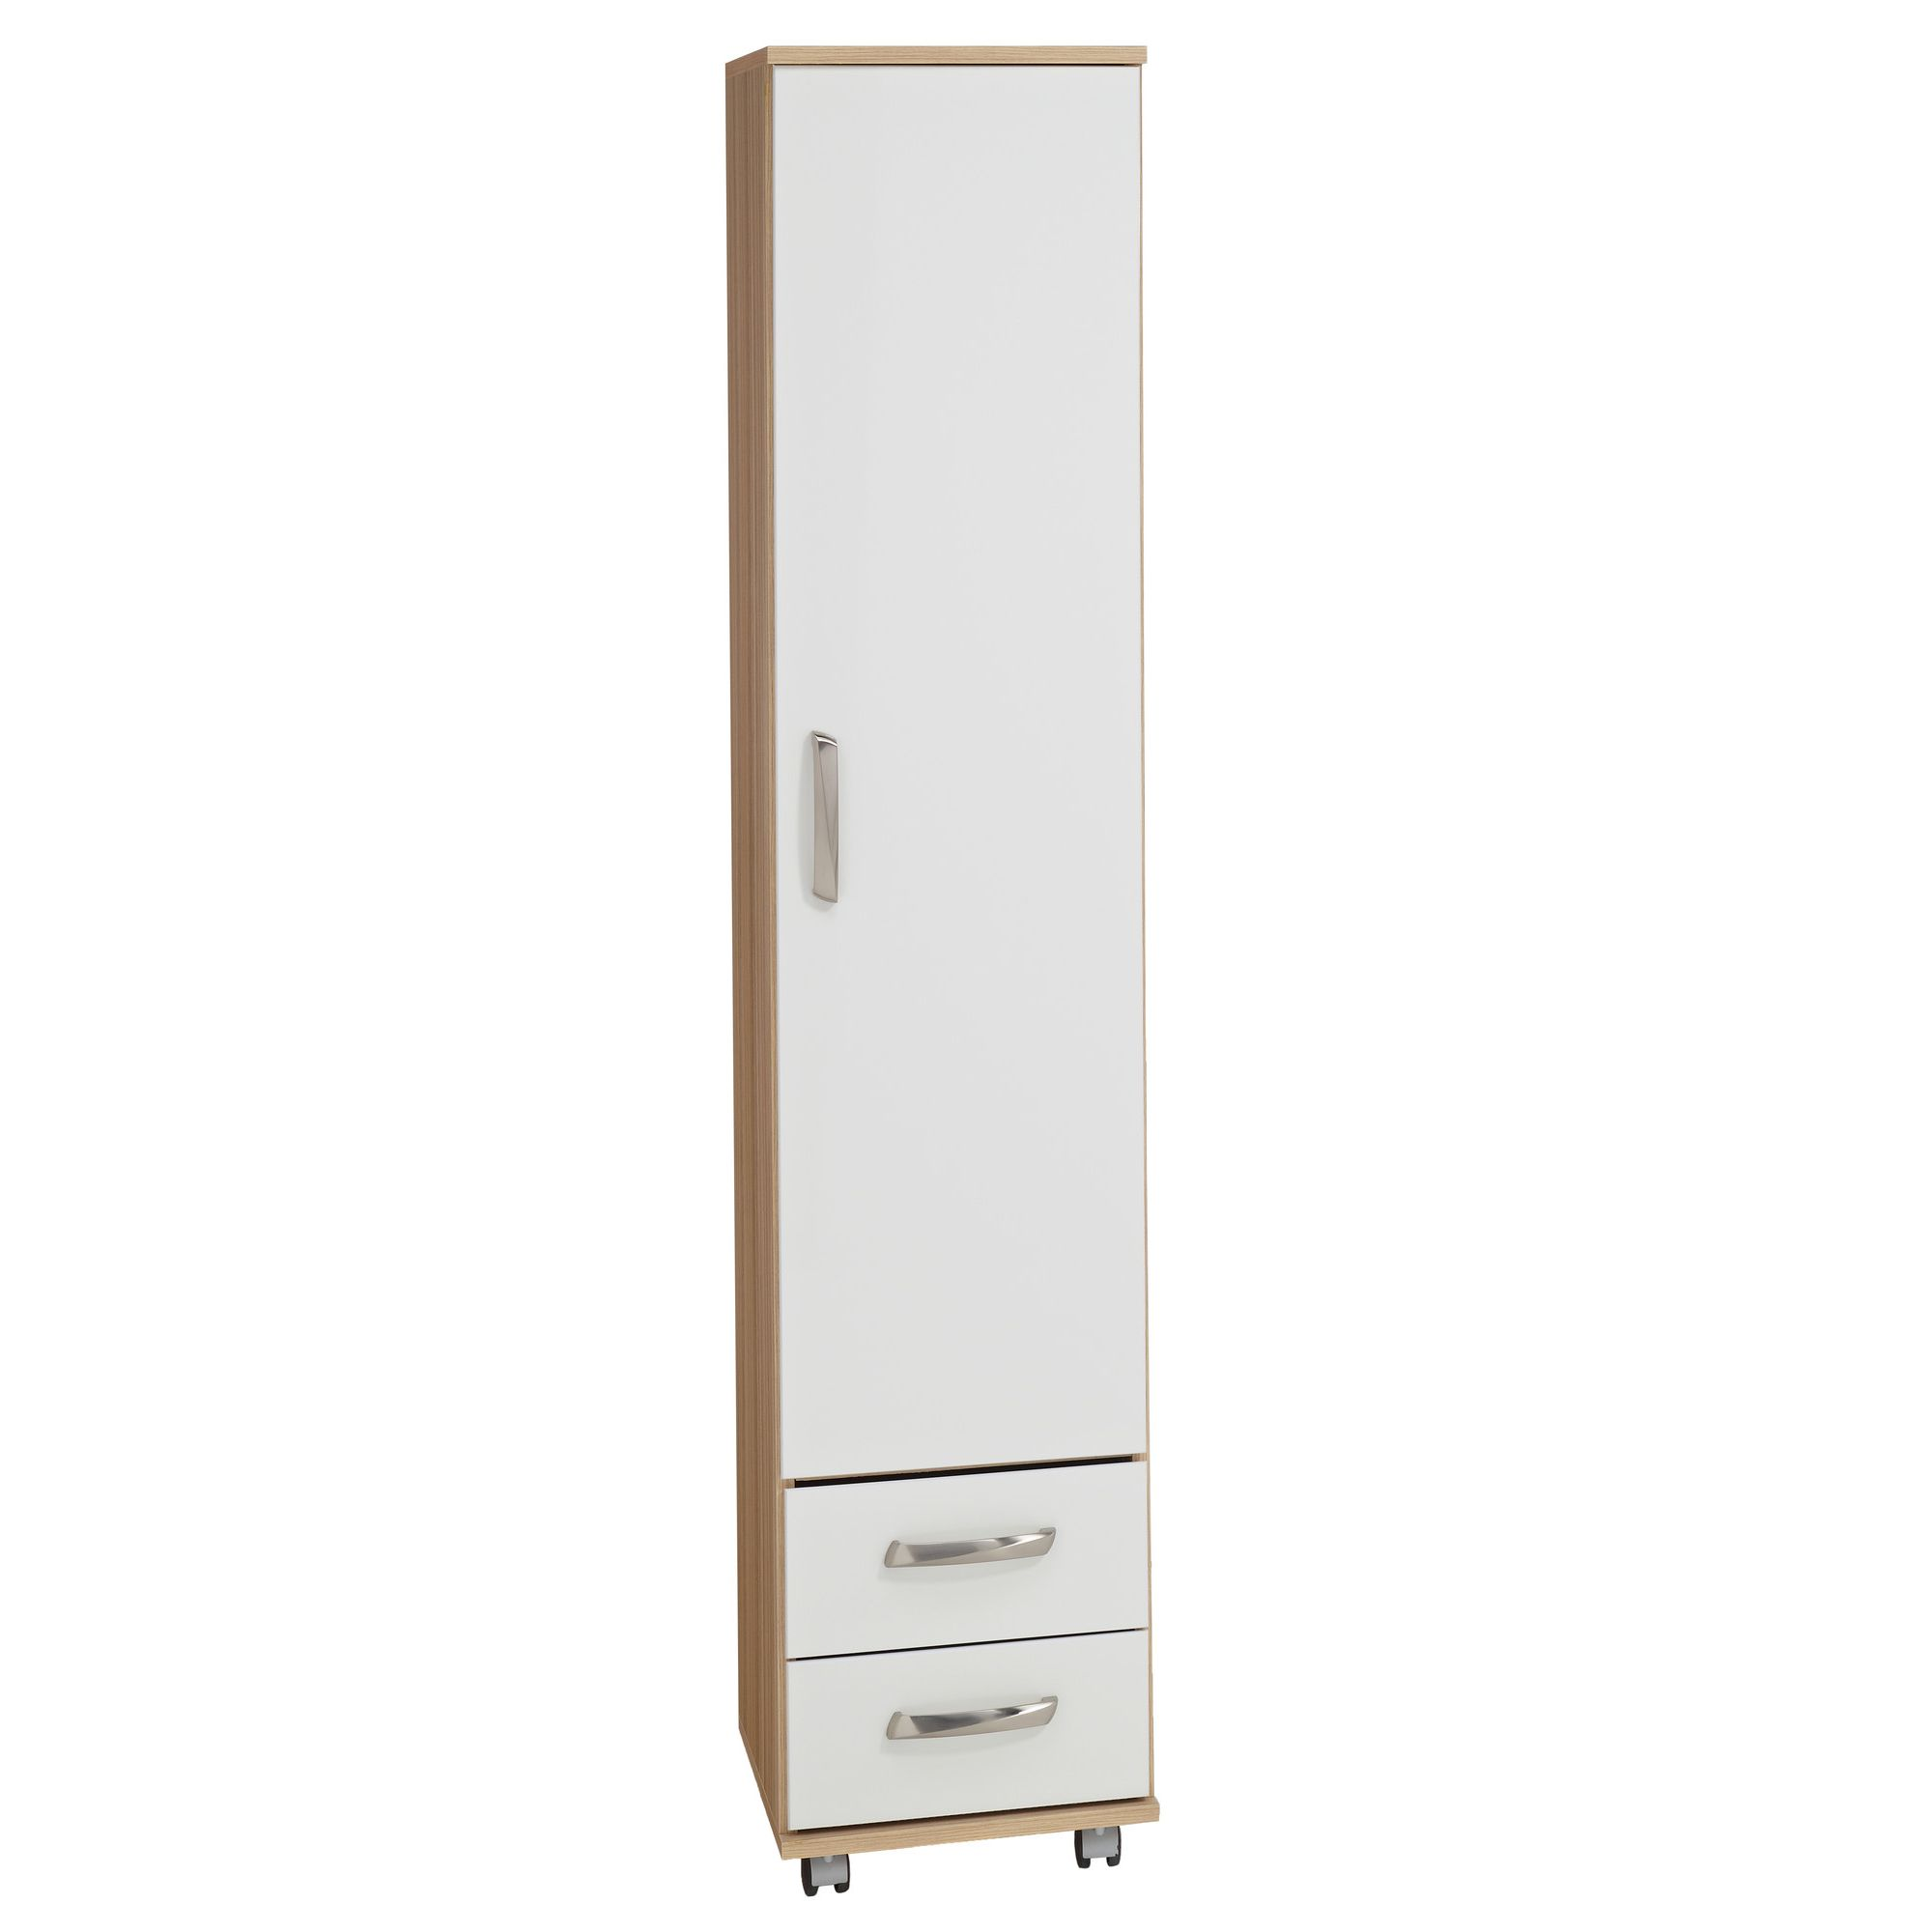 Ideal Furniture Regal 1 Door Wardrobe in white at Tescos Direct